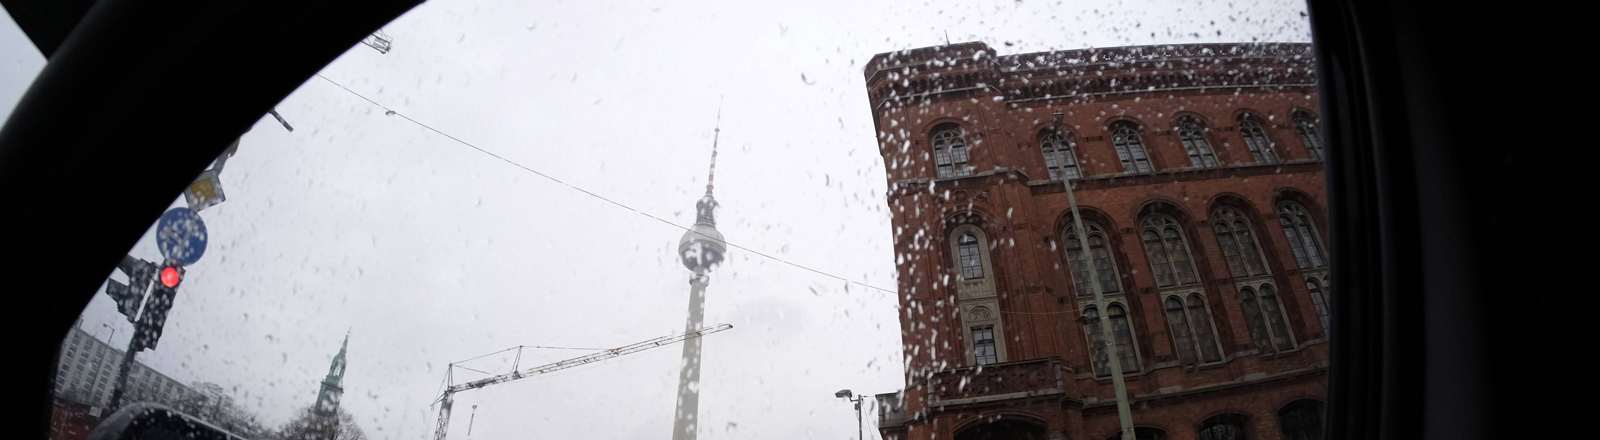 Regen am Alexanderplatz in Berlin